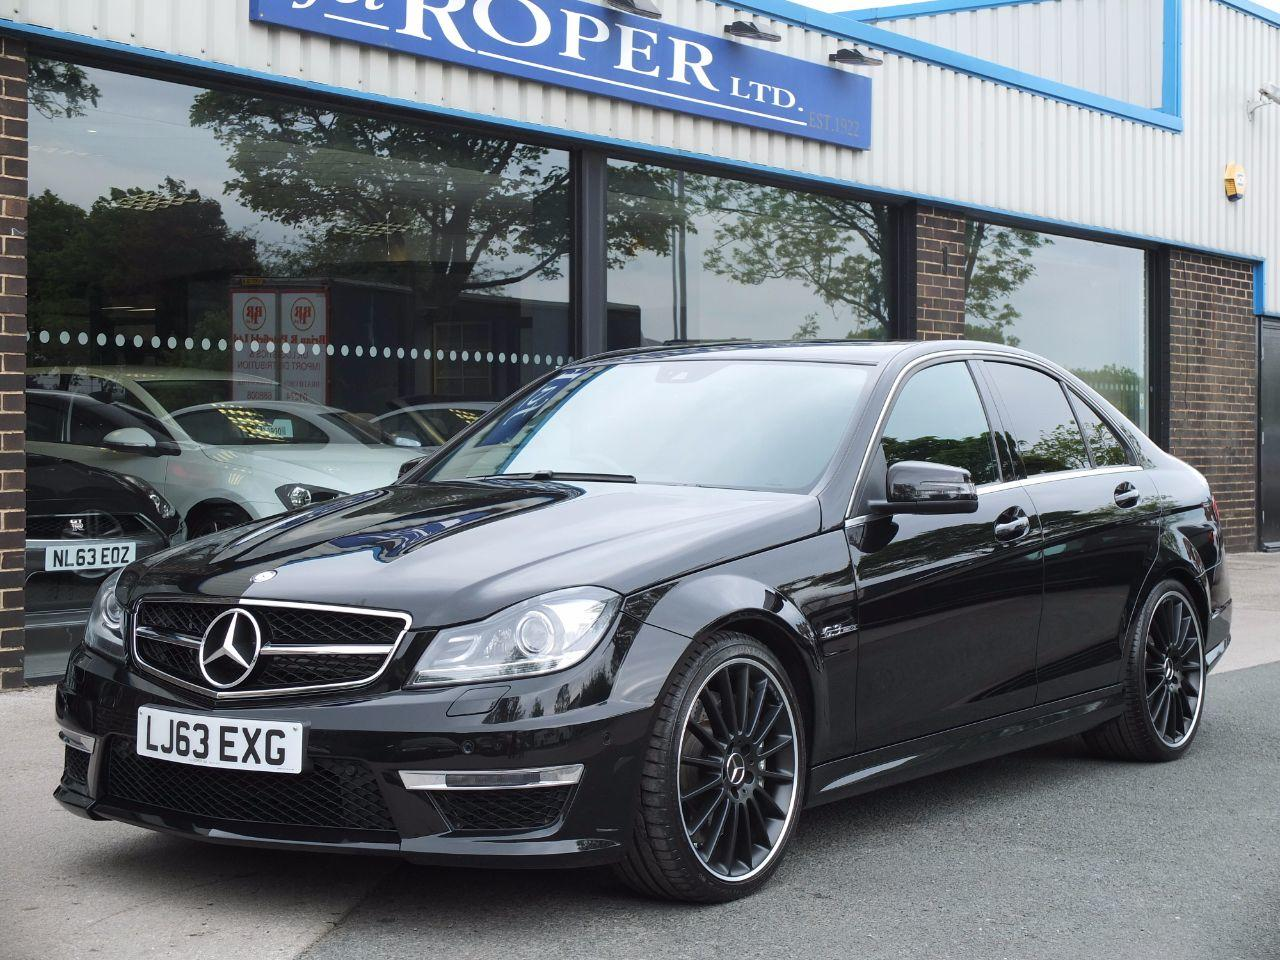 Mercedes-Benz C Class 6.2 C63 AMG MCT 7 Speed Auto Saloon Petrol Obsidian Black MetallicMercedes-Benz C Class 6.2 C63 AMG MCT 7 Speed Auto Saloon Petrol Obsidian Black Metallic at fa Roper Ltd Bradford